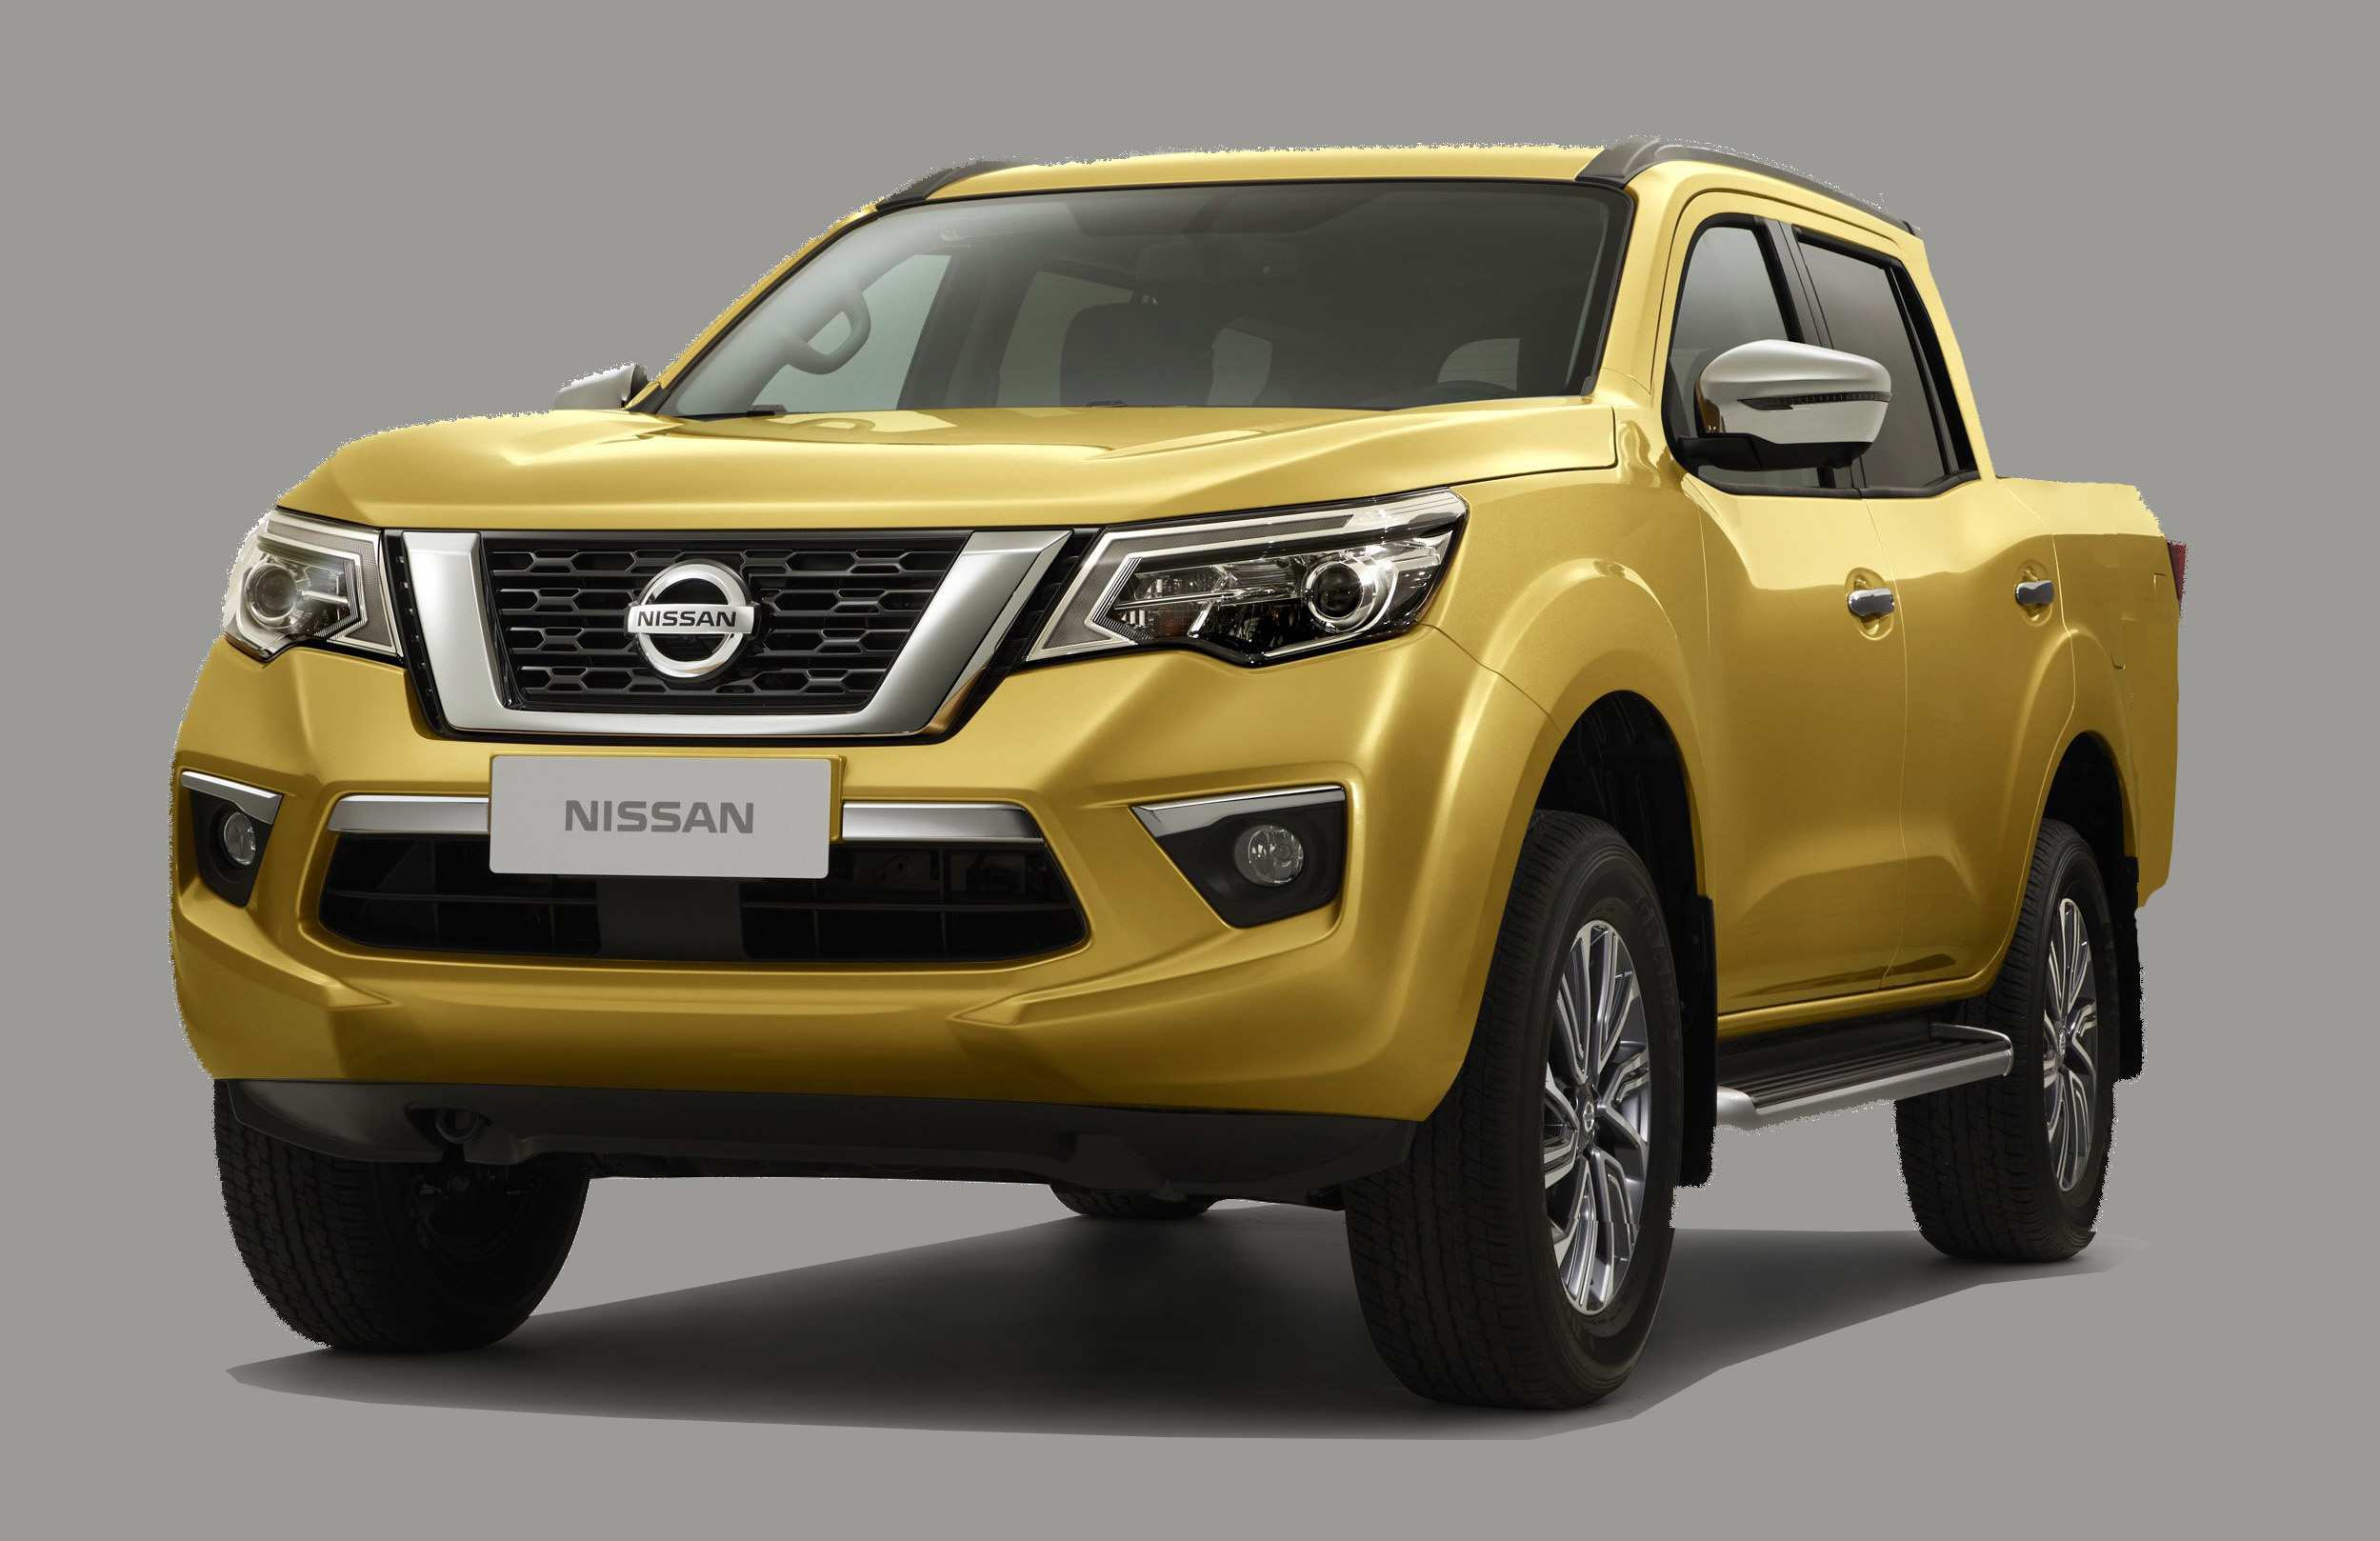 39 Best 2020 Nissan Navara Uk Model